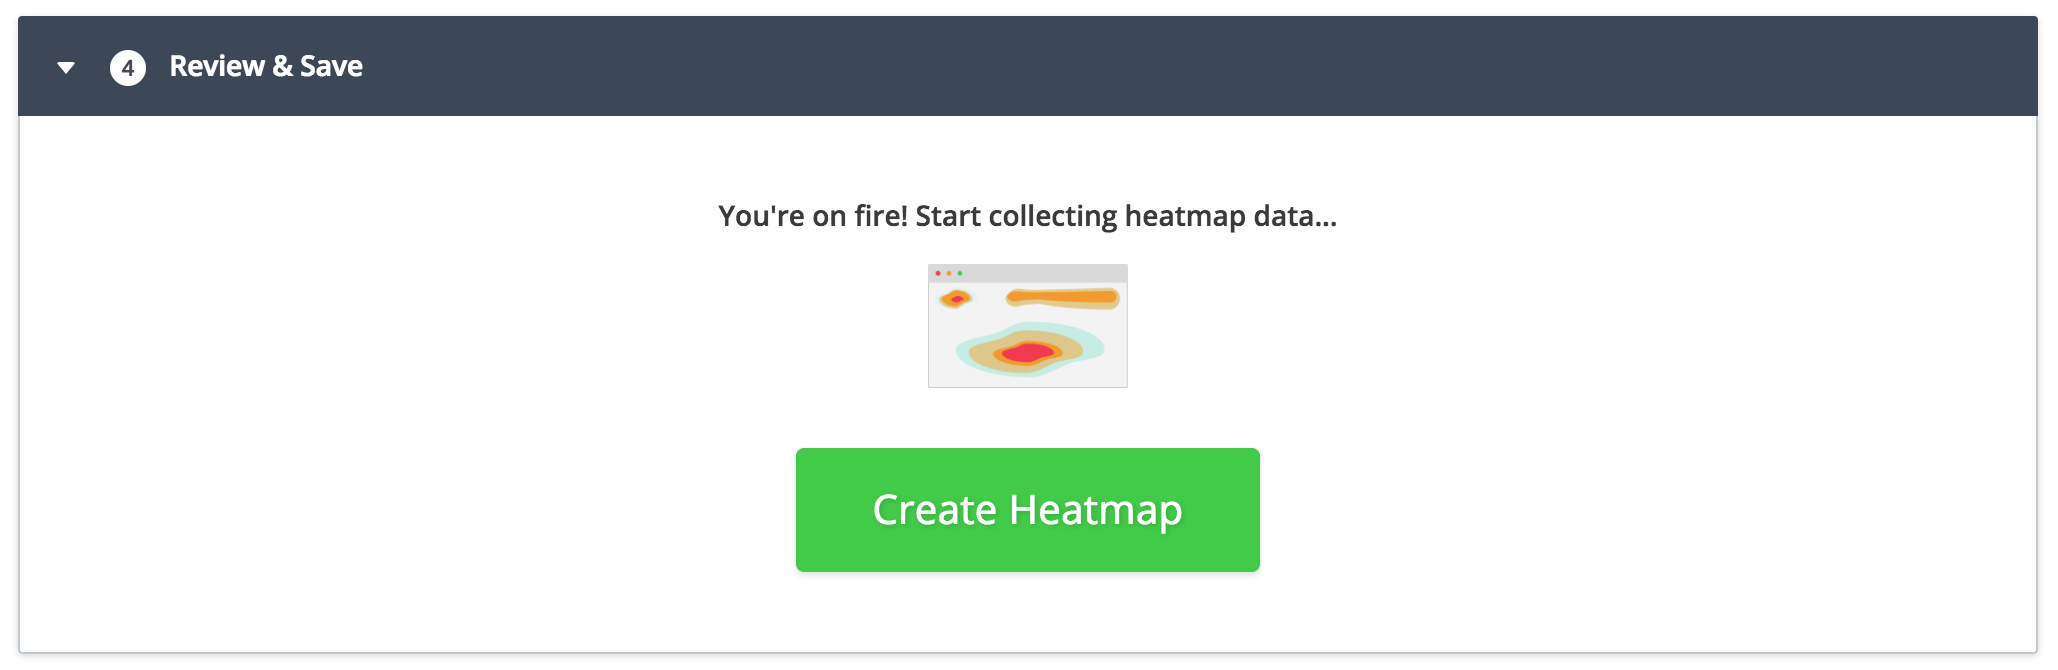 step4 - create website heatmap